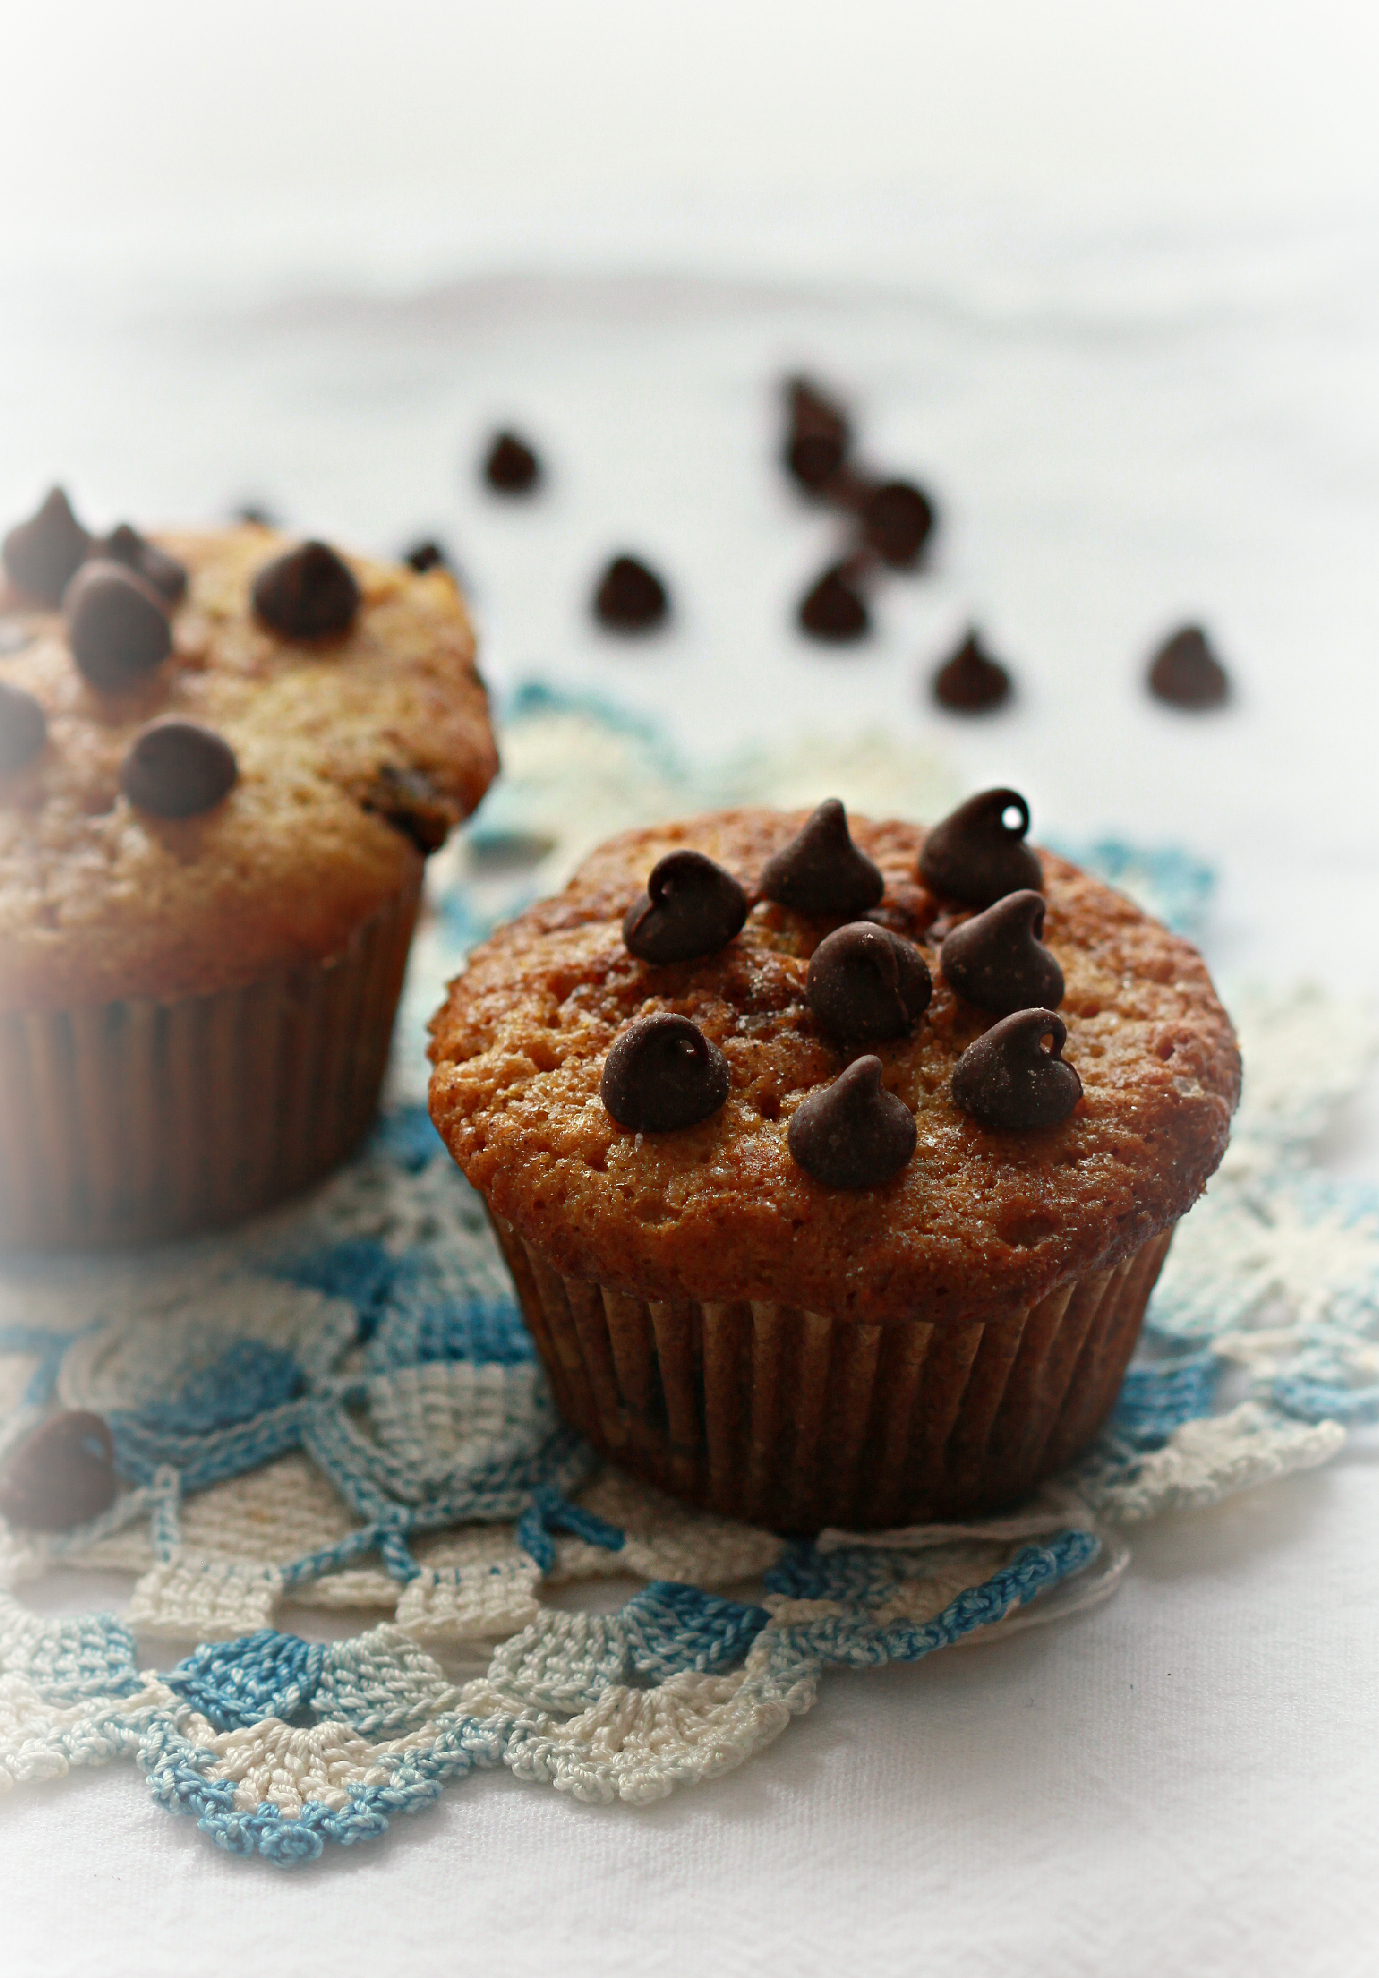 ©Dark Chocolate Chip Muffins on Lace Vignette by Dena T Bray